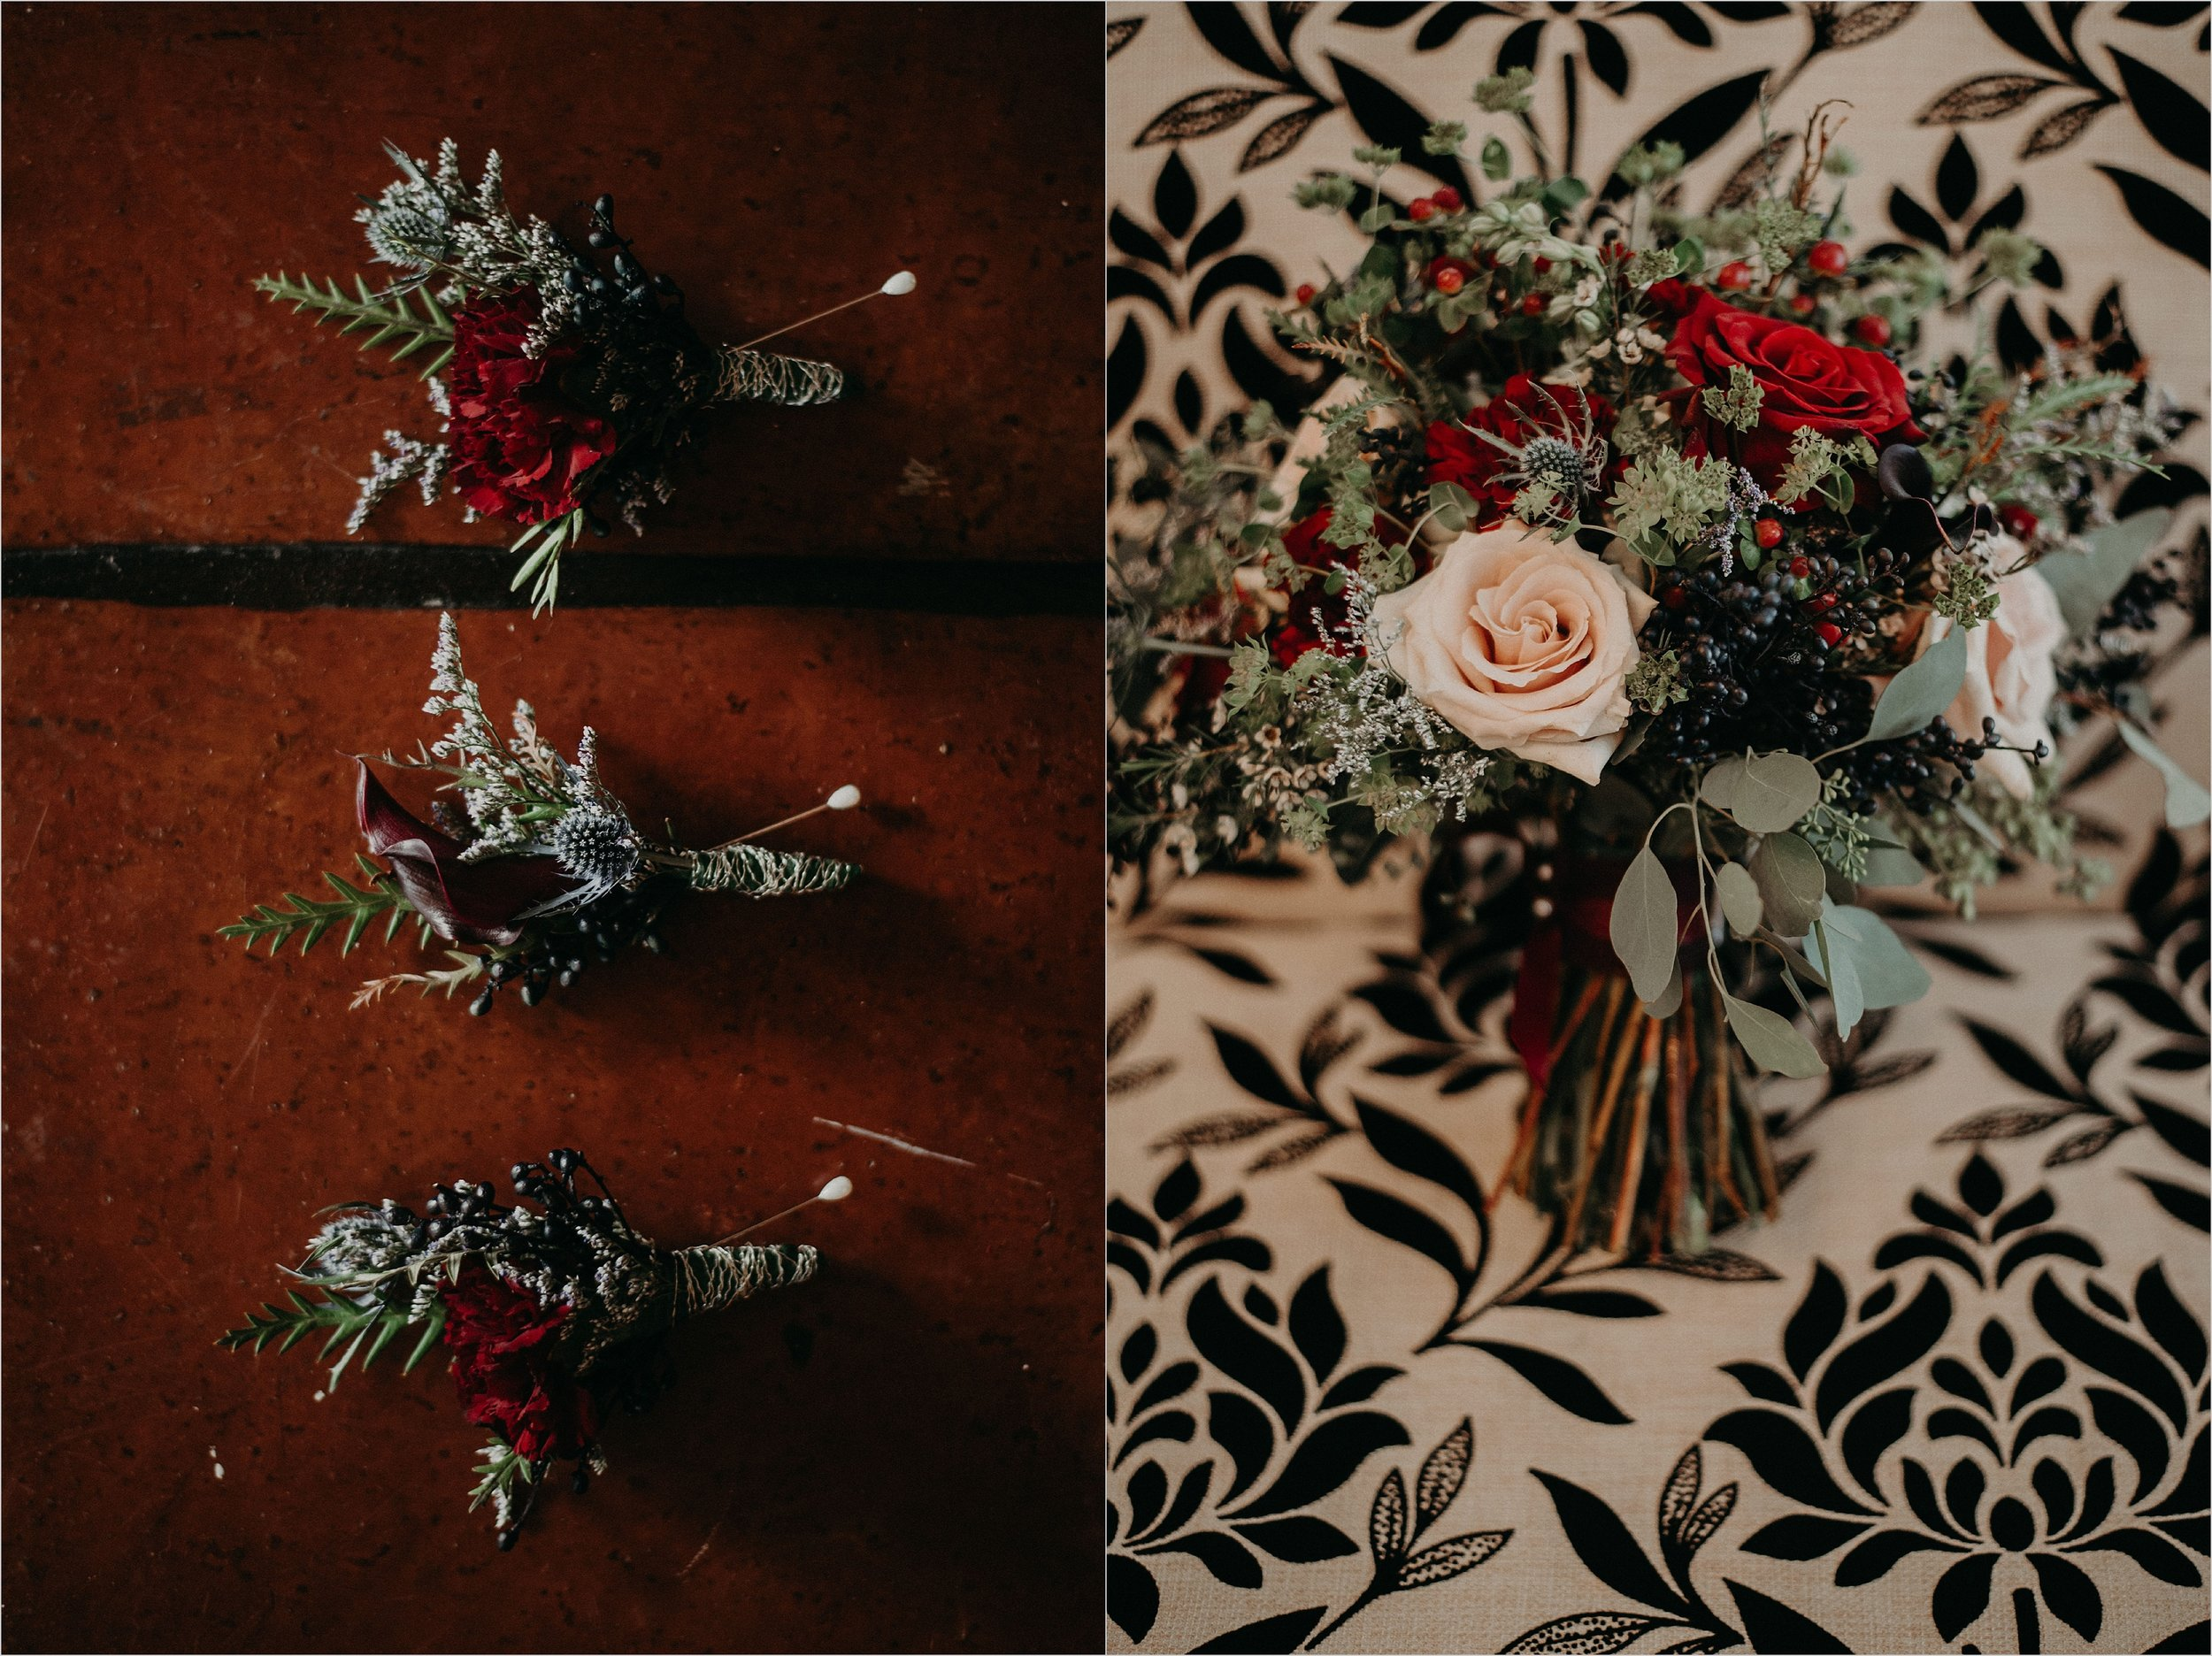 Floral bouquet and boutonnieres with eucalyptus, pink and red roses, and berry sprigs